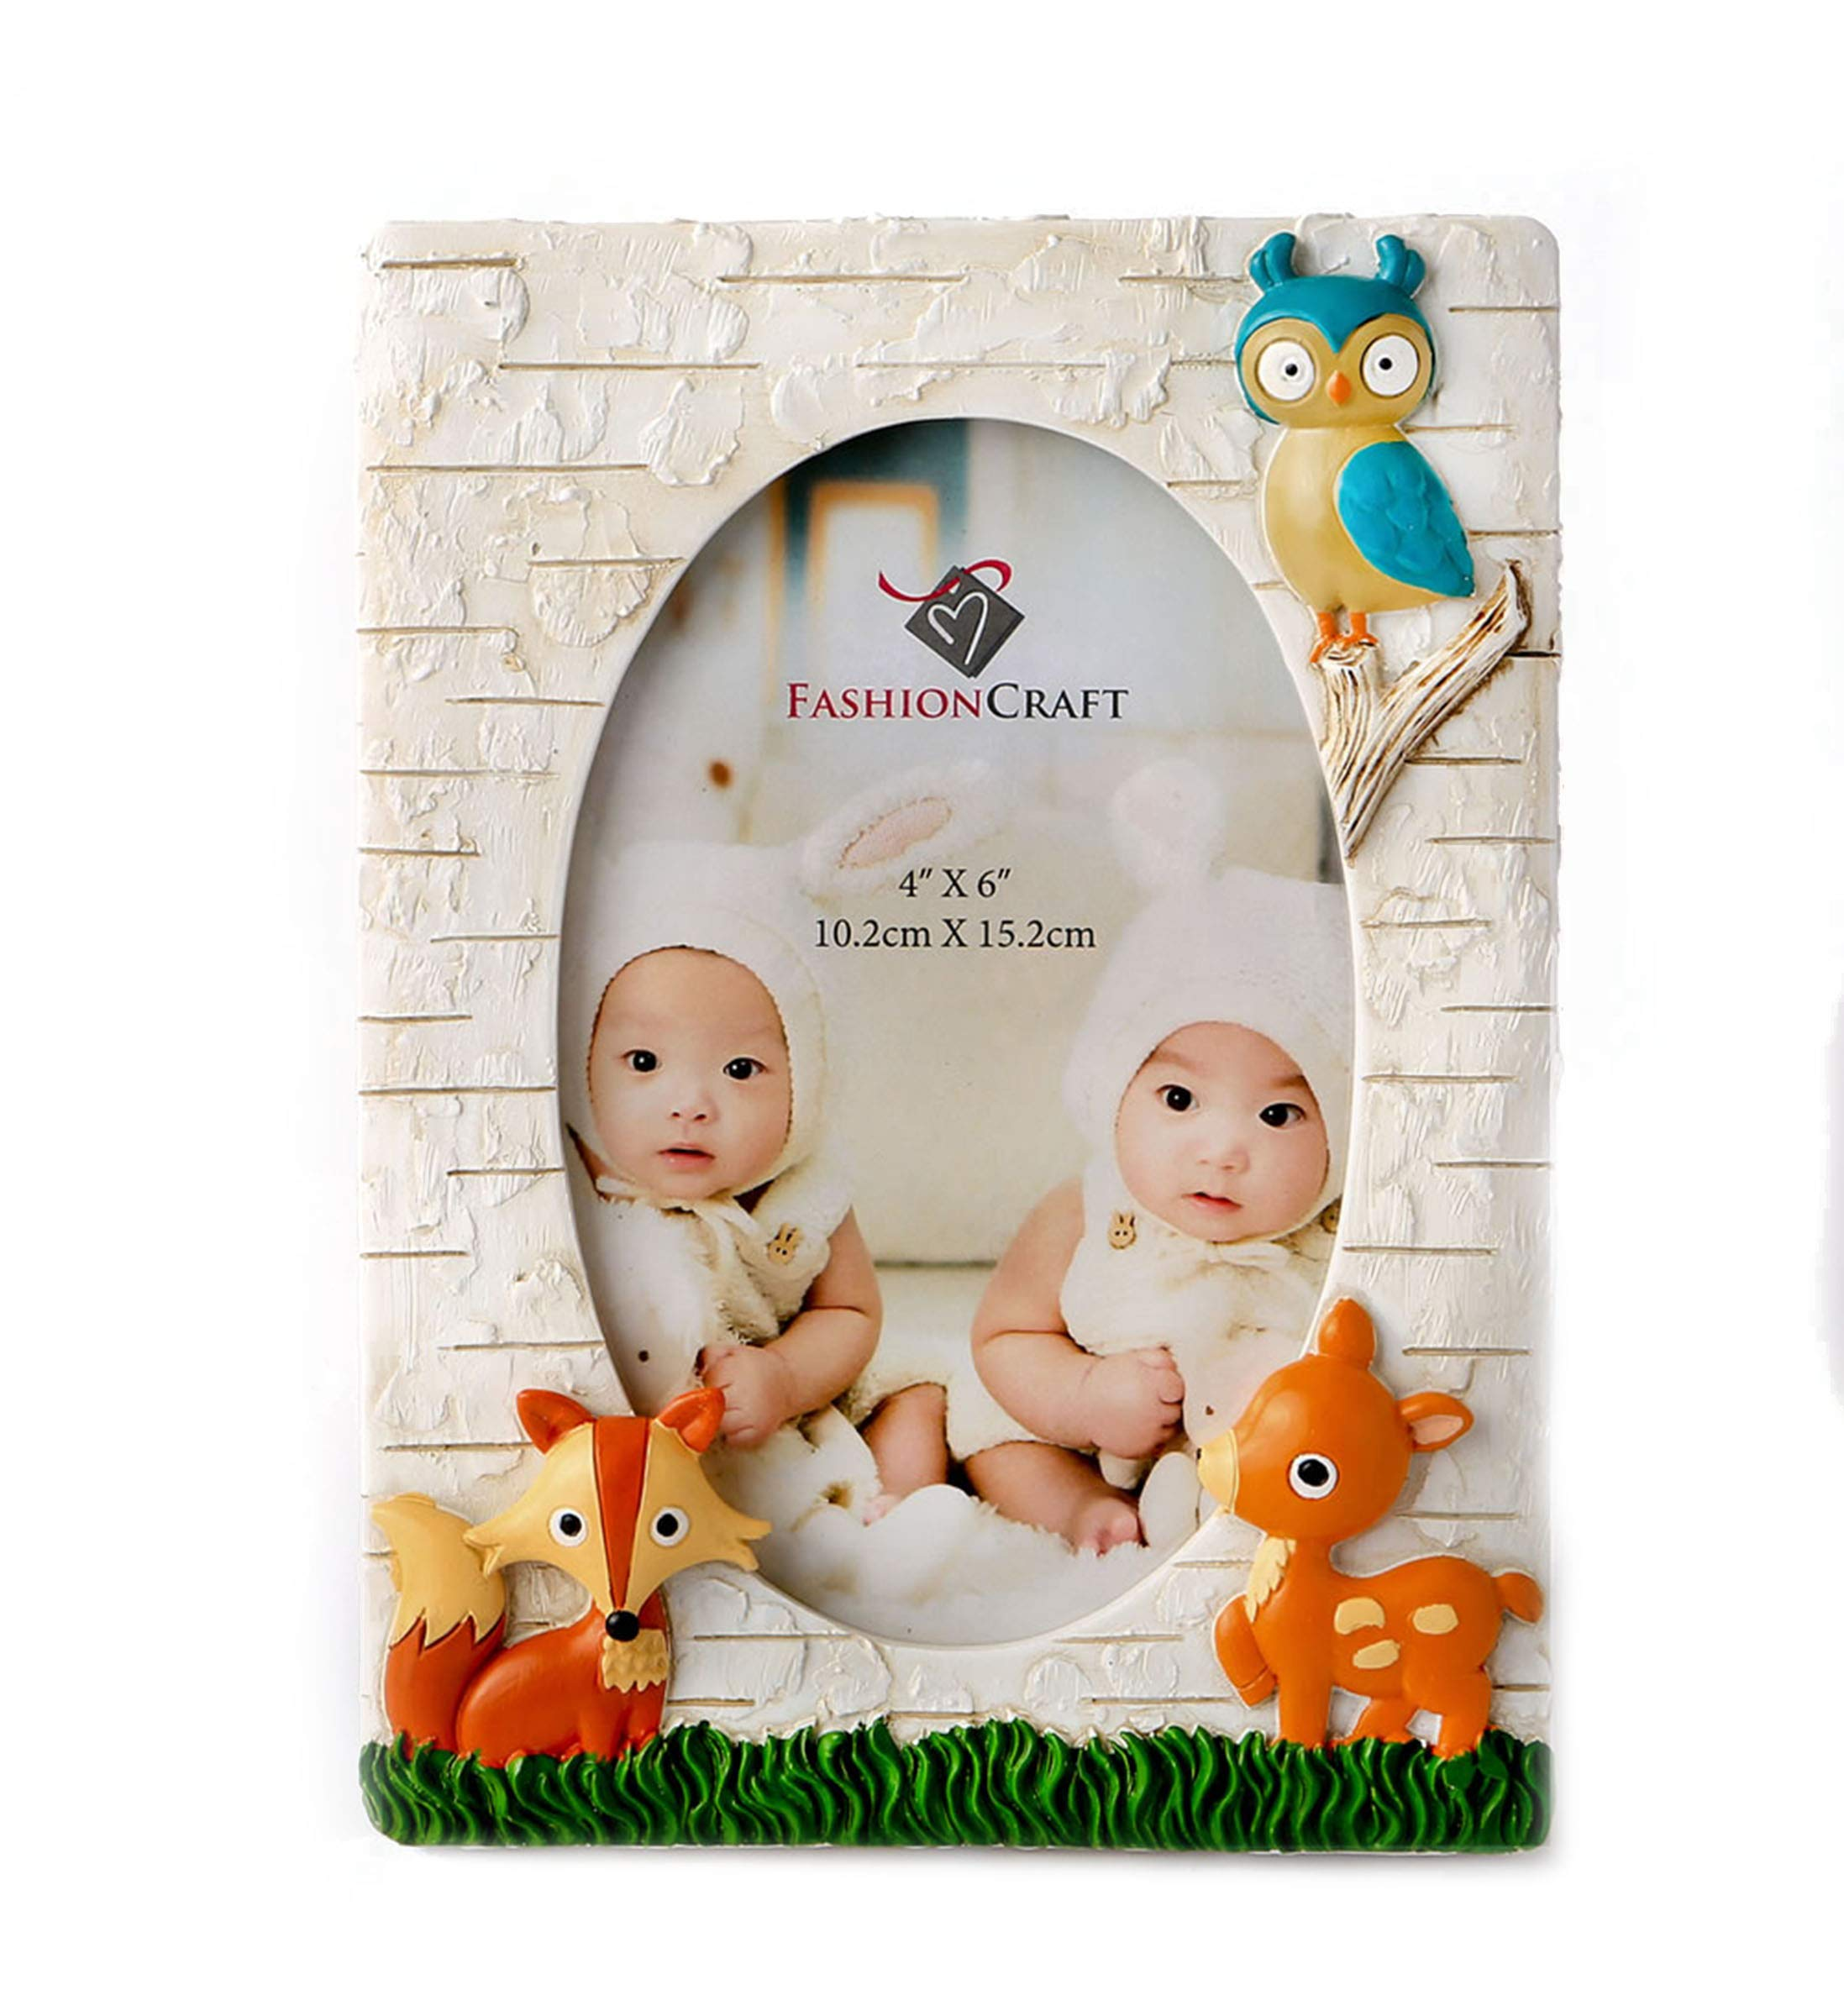 Fashioncraft Woodland Animals 4x6 Photo Frame - Polyresin - Handpainted - Oval Insert - Gender Neutral for Boys and Girls - Baby Room Décor